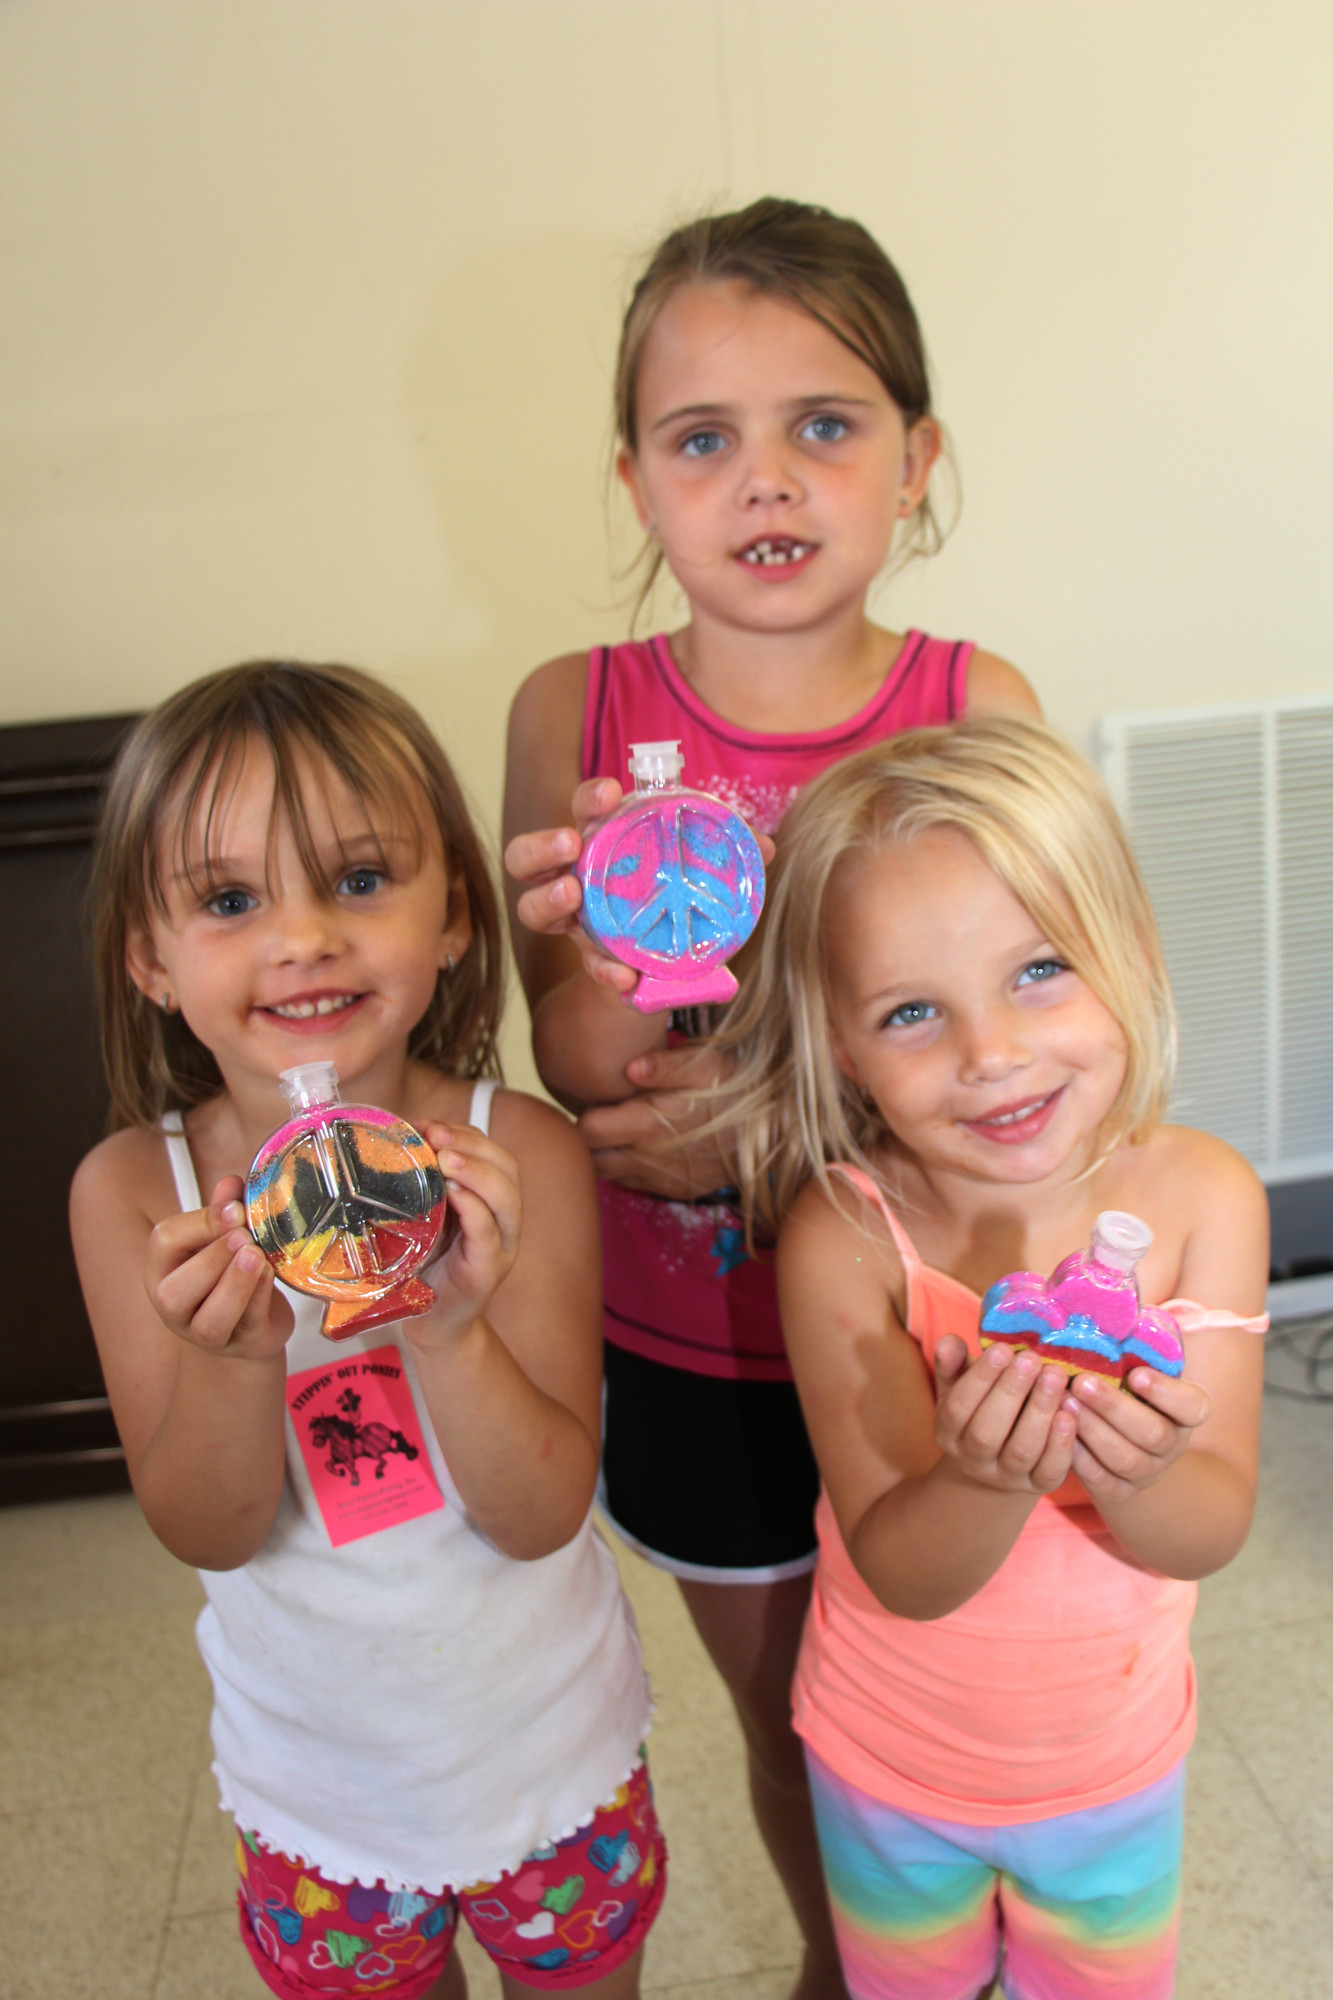 The Frantzen sisters had some fun making Sand art. Jaclyn, 3, left, Kylie, 3, right and Makayla, 6, showed off their work.